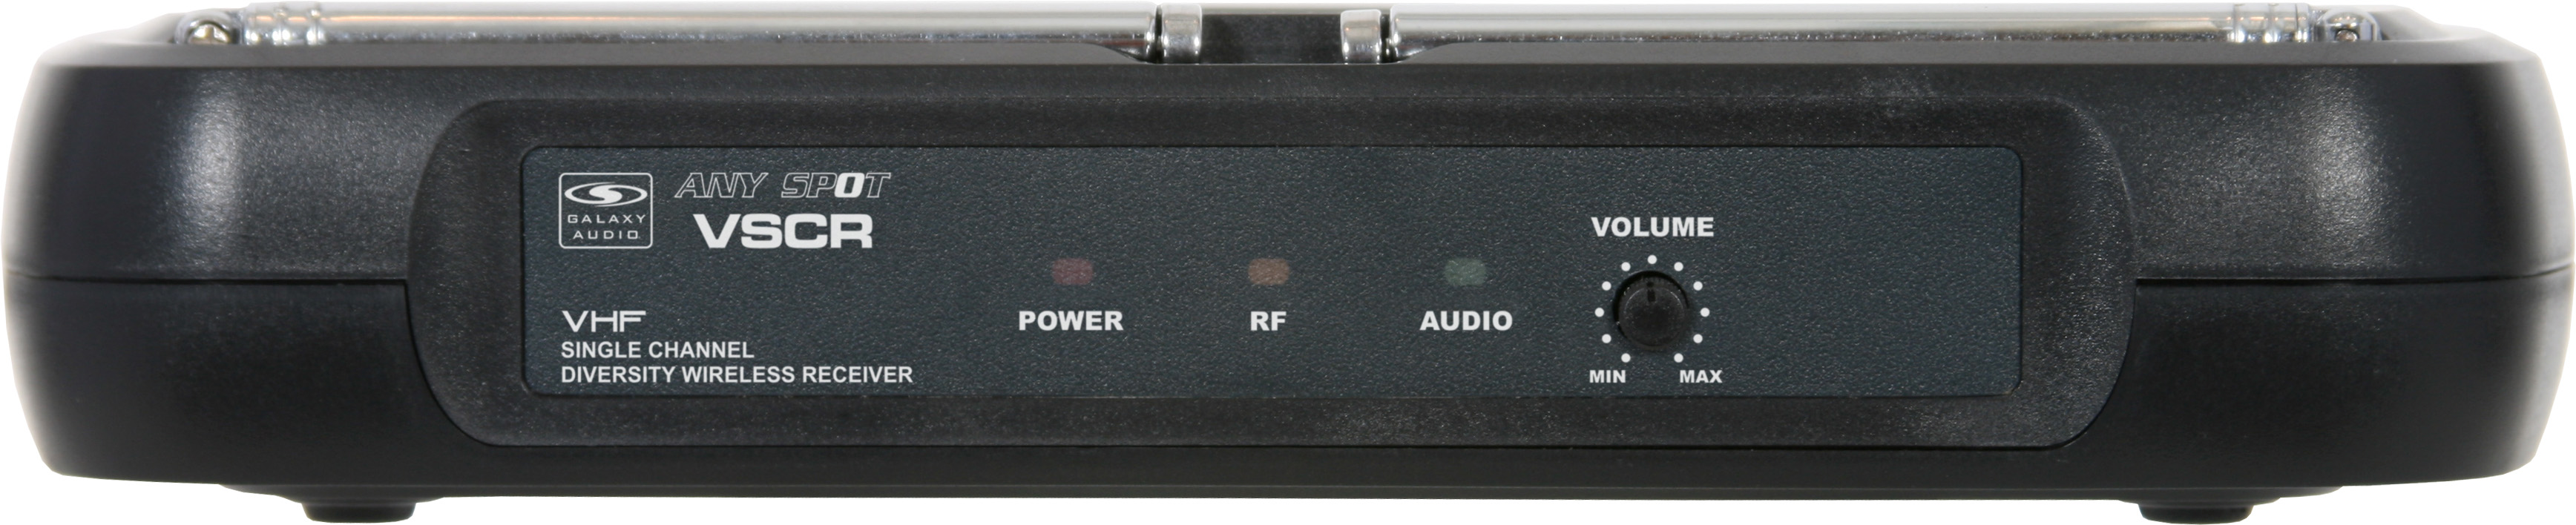 Galaxy Audio VSC Wireless Microphone System Receiver with RF Indicator (VSCR)